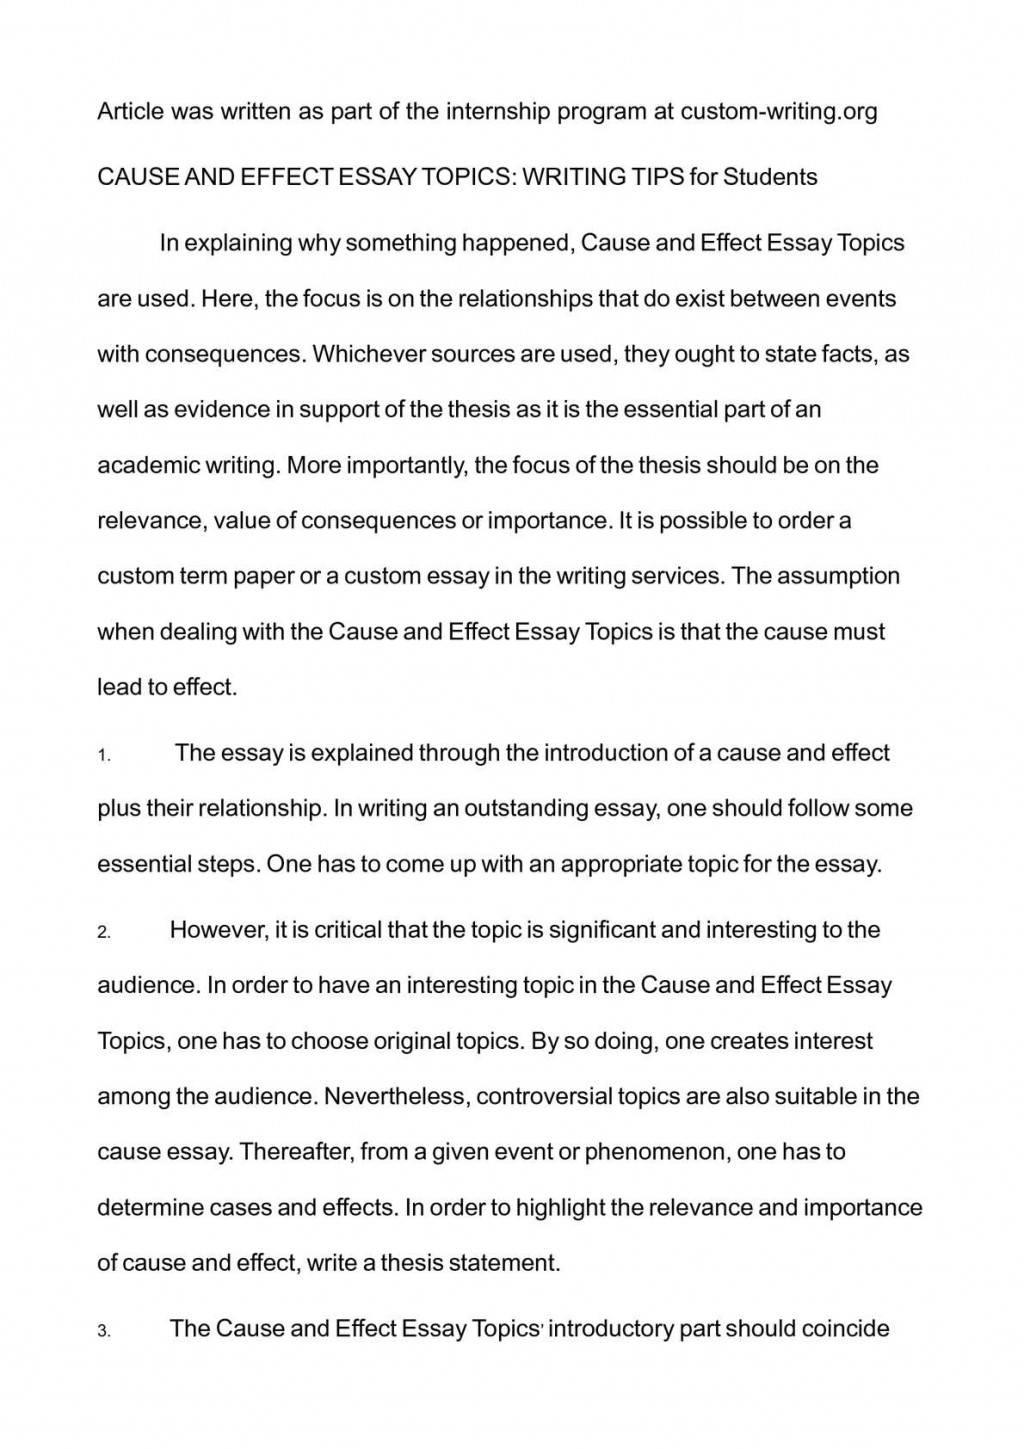 002 Essay Example P1 Cause And Effect Exceptional Topics Middle School Good For College Large